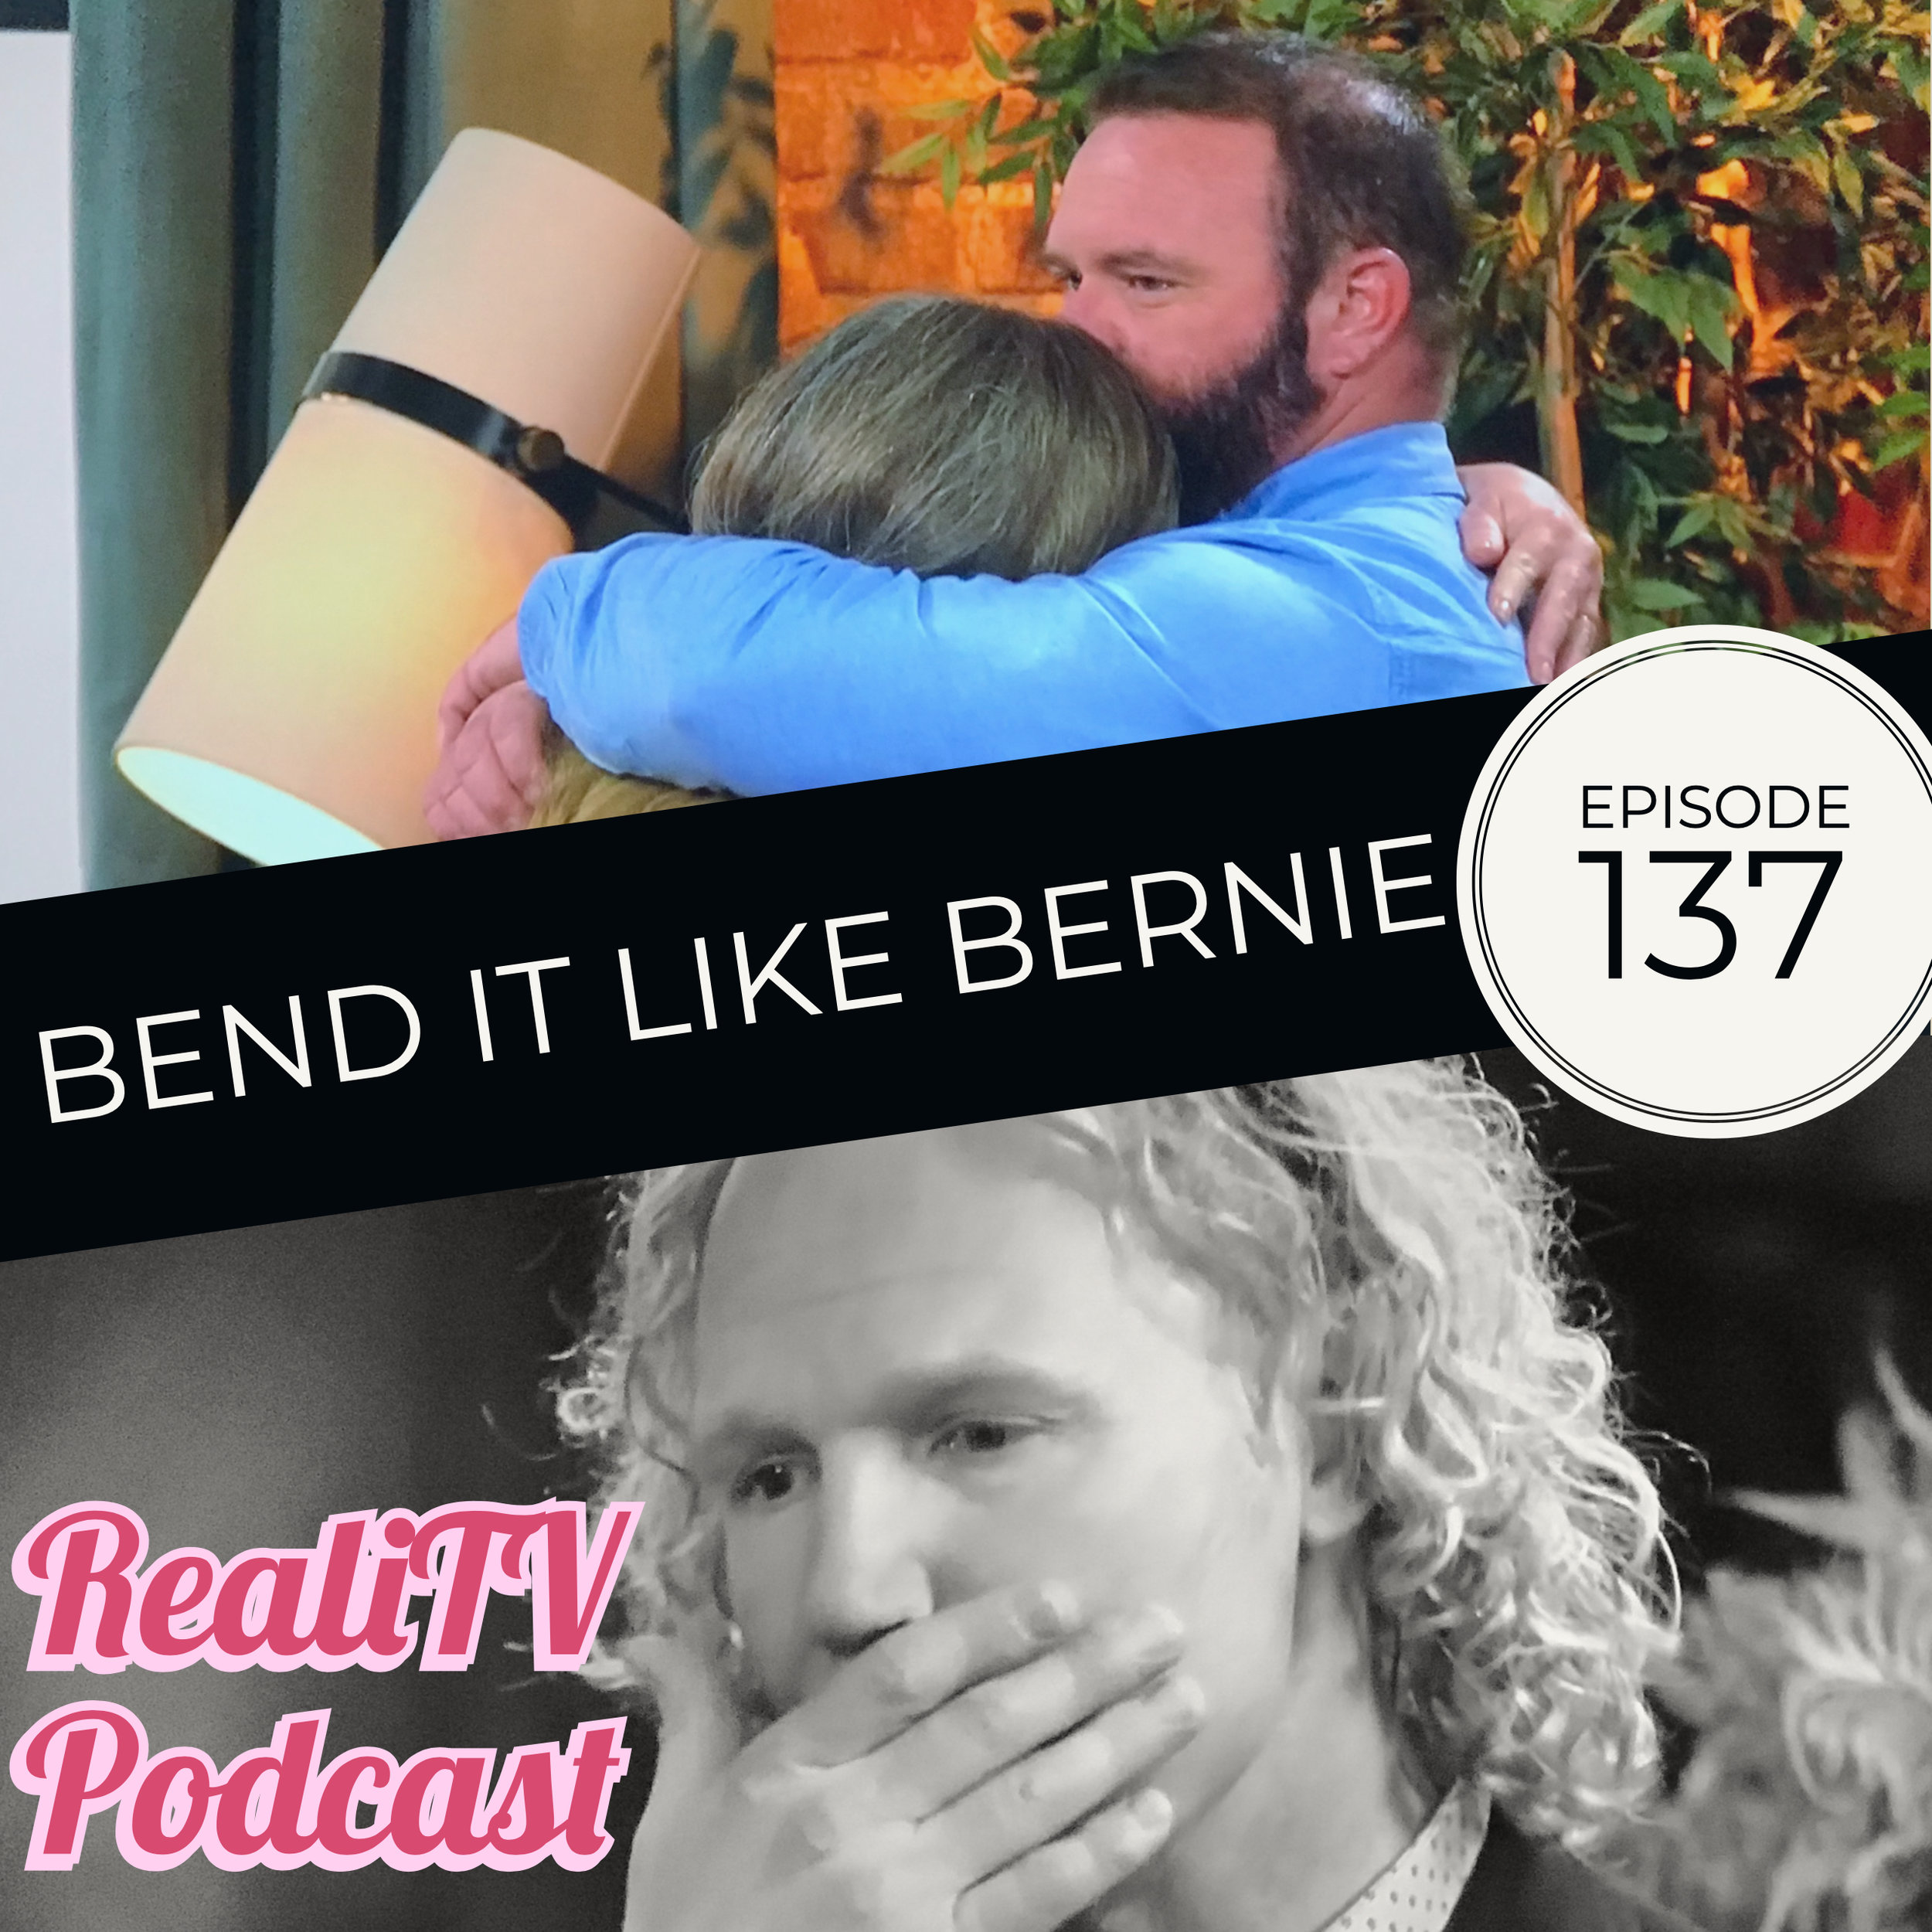 "Episode 137: Bend it Like Bernie 4.18.19 - ""The Ladies Who Punch"" continues to deliver with the behind-the-scenes squabbles on The View. You'll never guess who Sherri Shepherd's biggest super fan is. It's shocking! In other shocking news, I declare it Cassowary Awareness Month & Married at First Sight inspired an engagement. ""A diamond is forever.""- Dr. Jessica.The Sister Wives Tell All gave us SuChin Pak as host and moderator for the Dress Barn Spring 2019 Blazer Collection, as well as referee during a Housewives-worthy Seeking Sister Wife Tell All. Someone award her with a Peace Prize.*PATREON Bonus Episodes, ad-free episodes, free merch & more at www.patreon.com/realitvpod*Total Request Podcast at www.patreon.com/amandaandjodie YOU request the shows, WE watch them & break em down!"